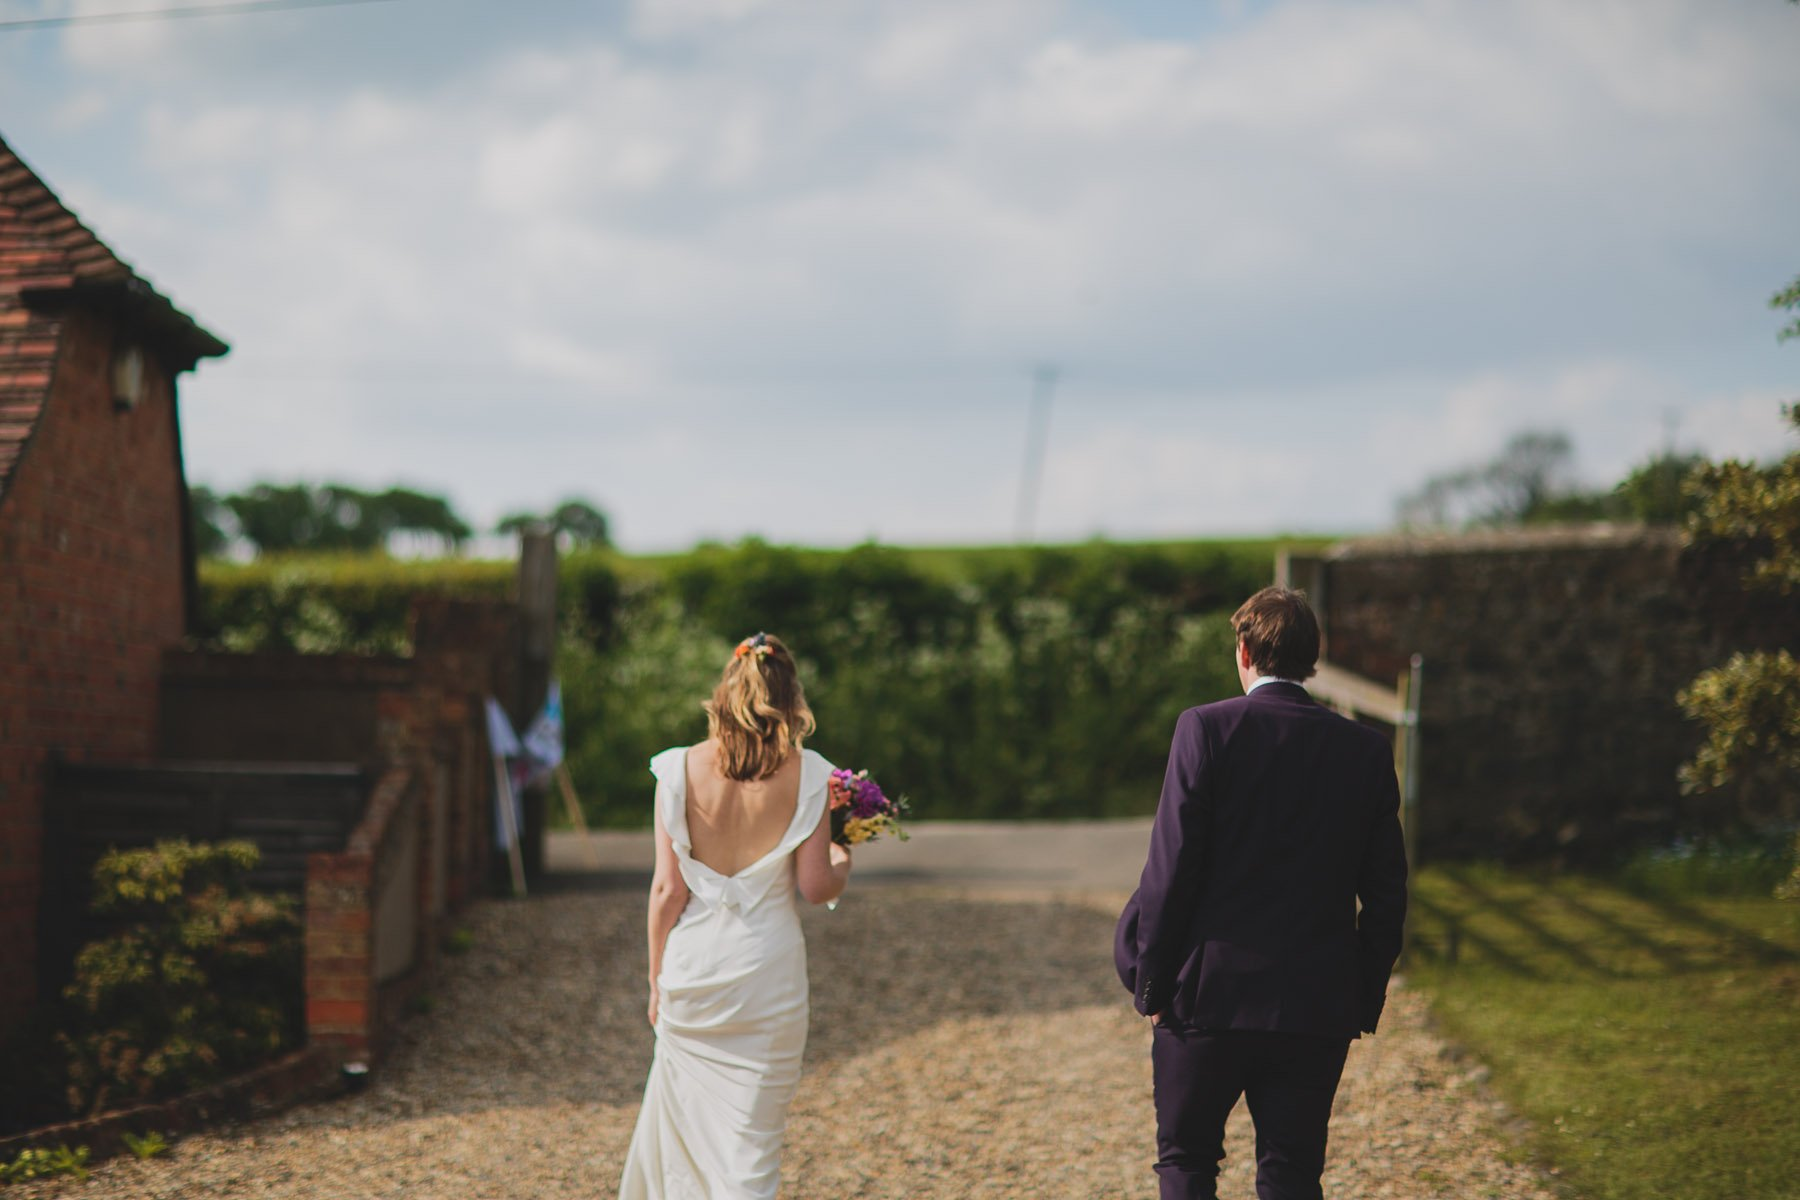 Buckinghamshire-Wedding-Lizzie-Duncan-104